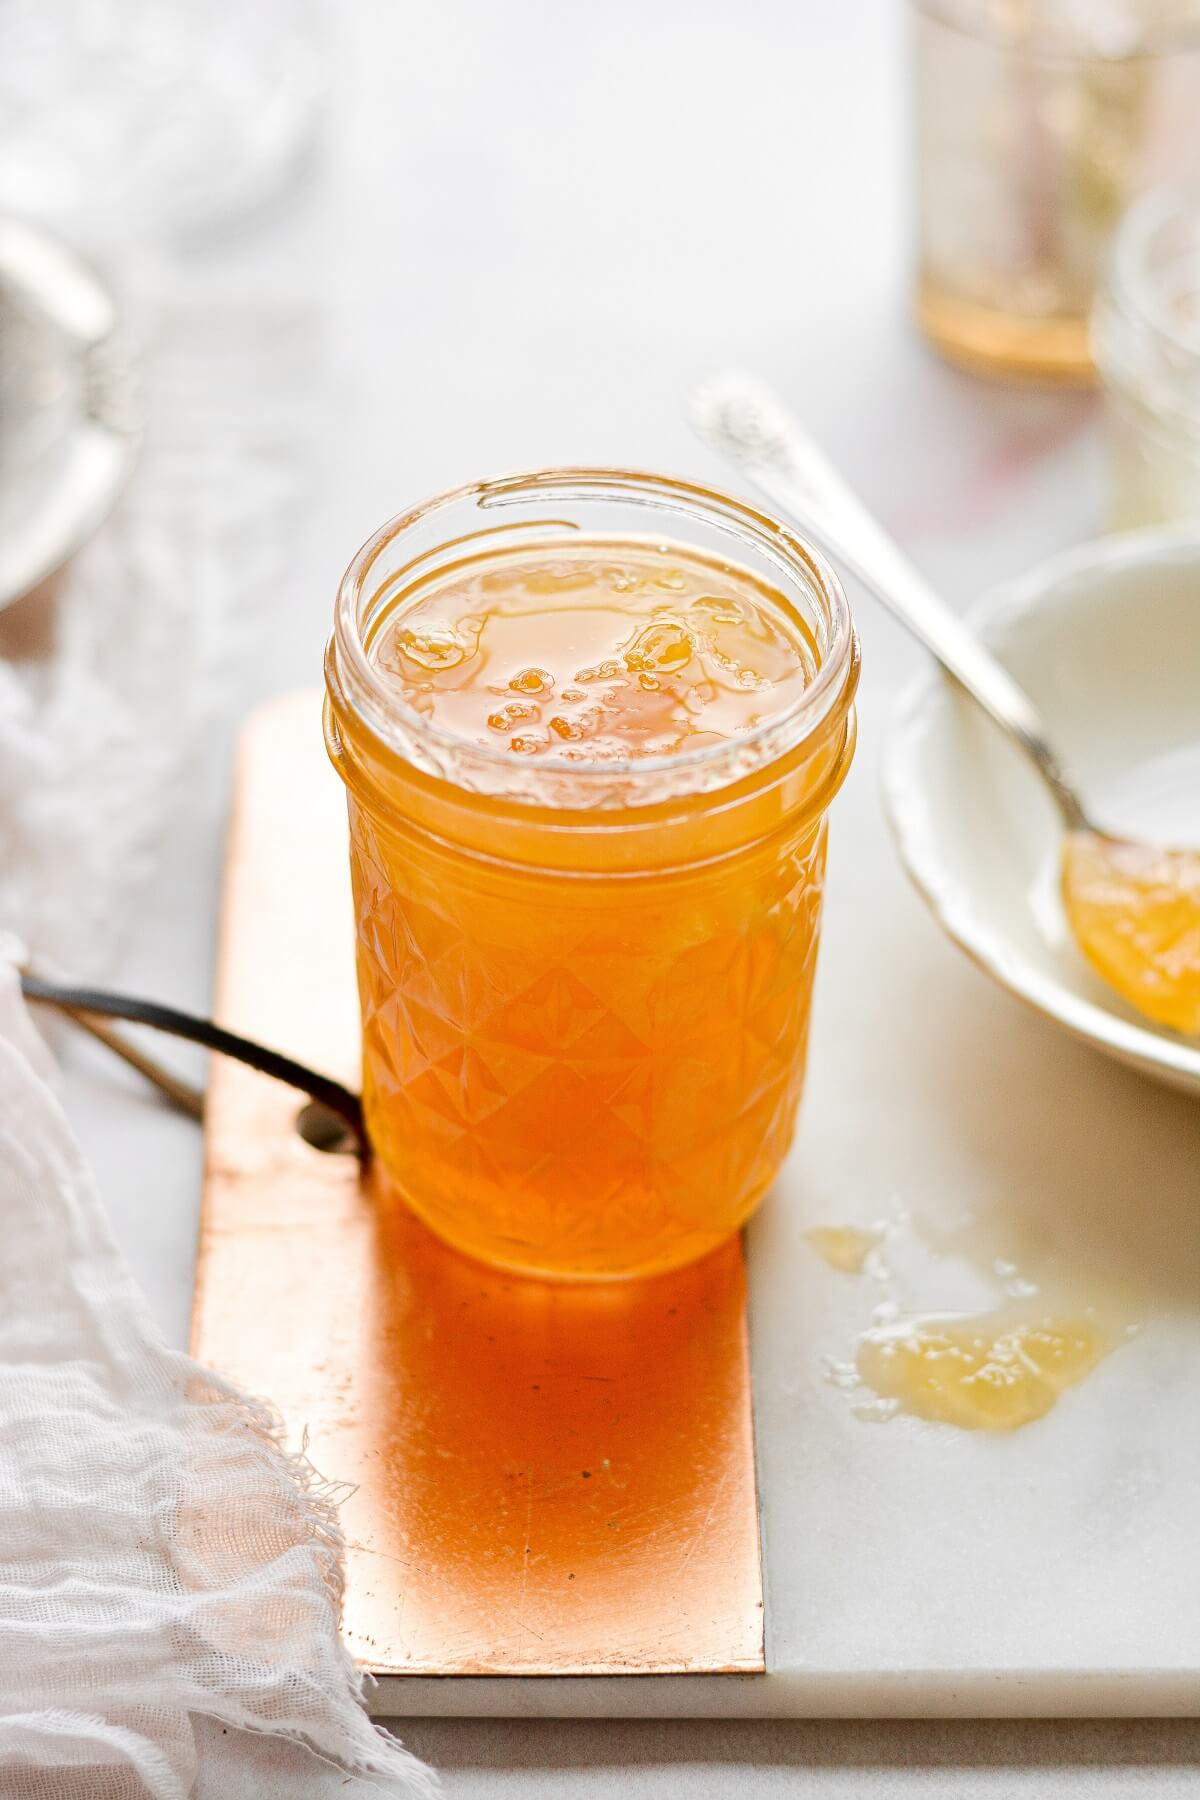 A jar of lemon marmalade with a silver spoon.